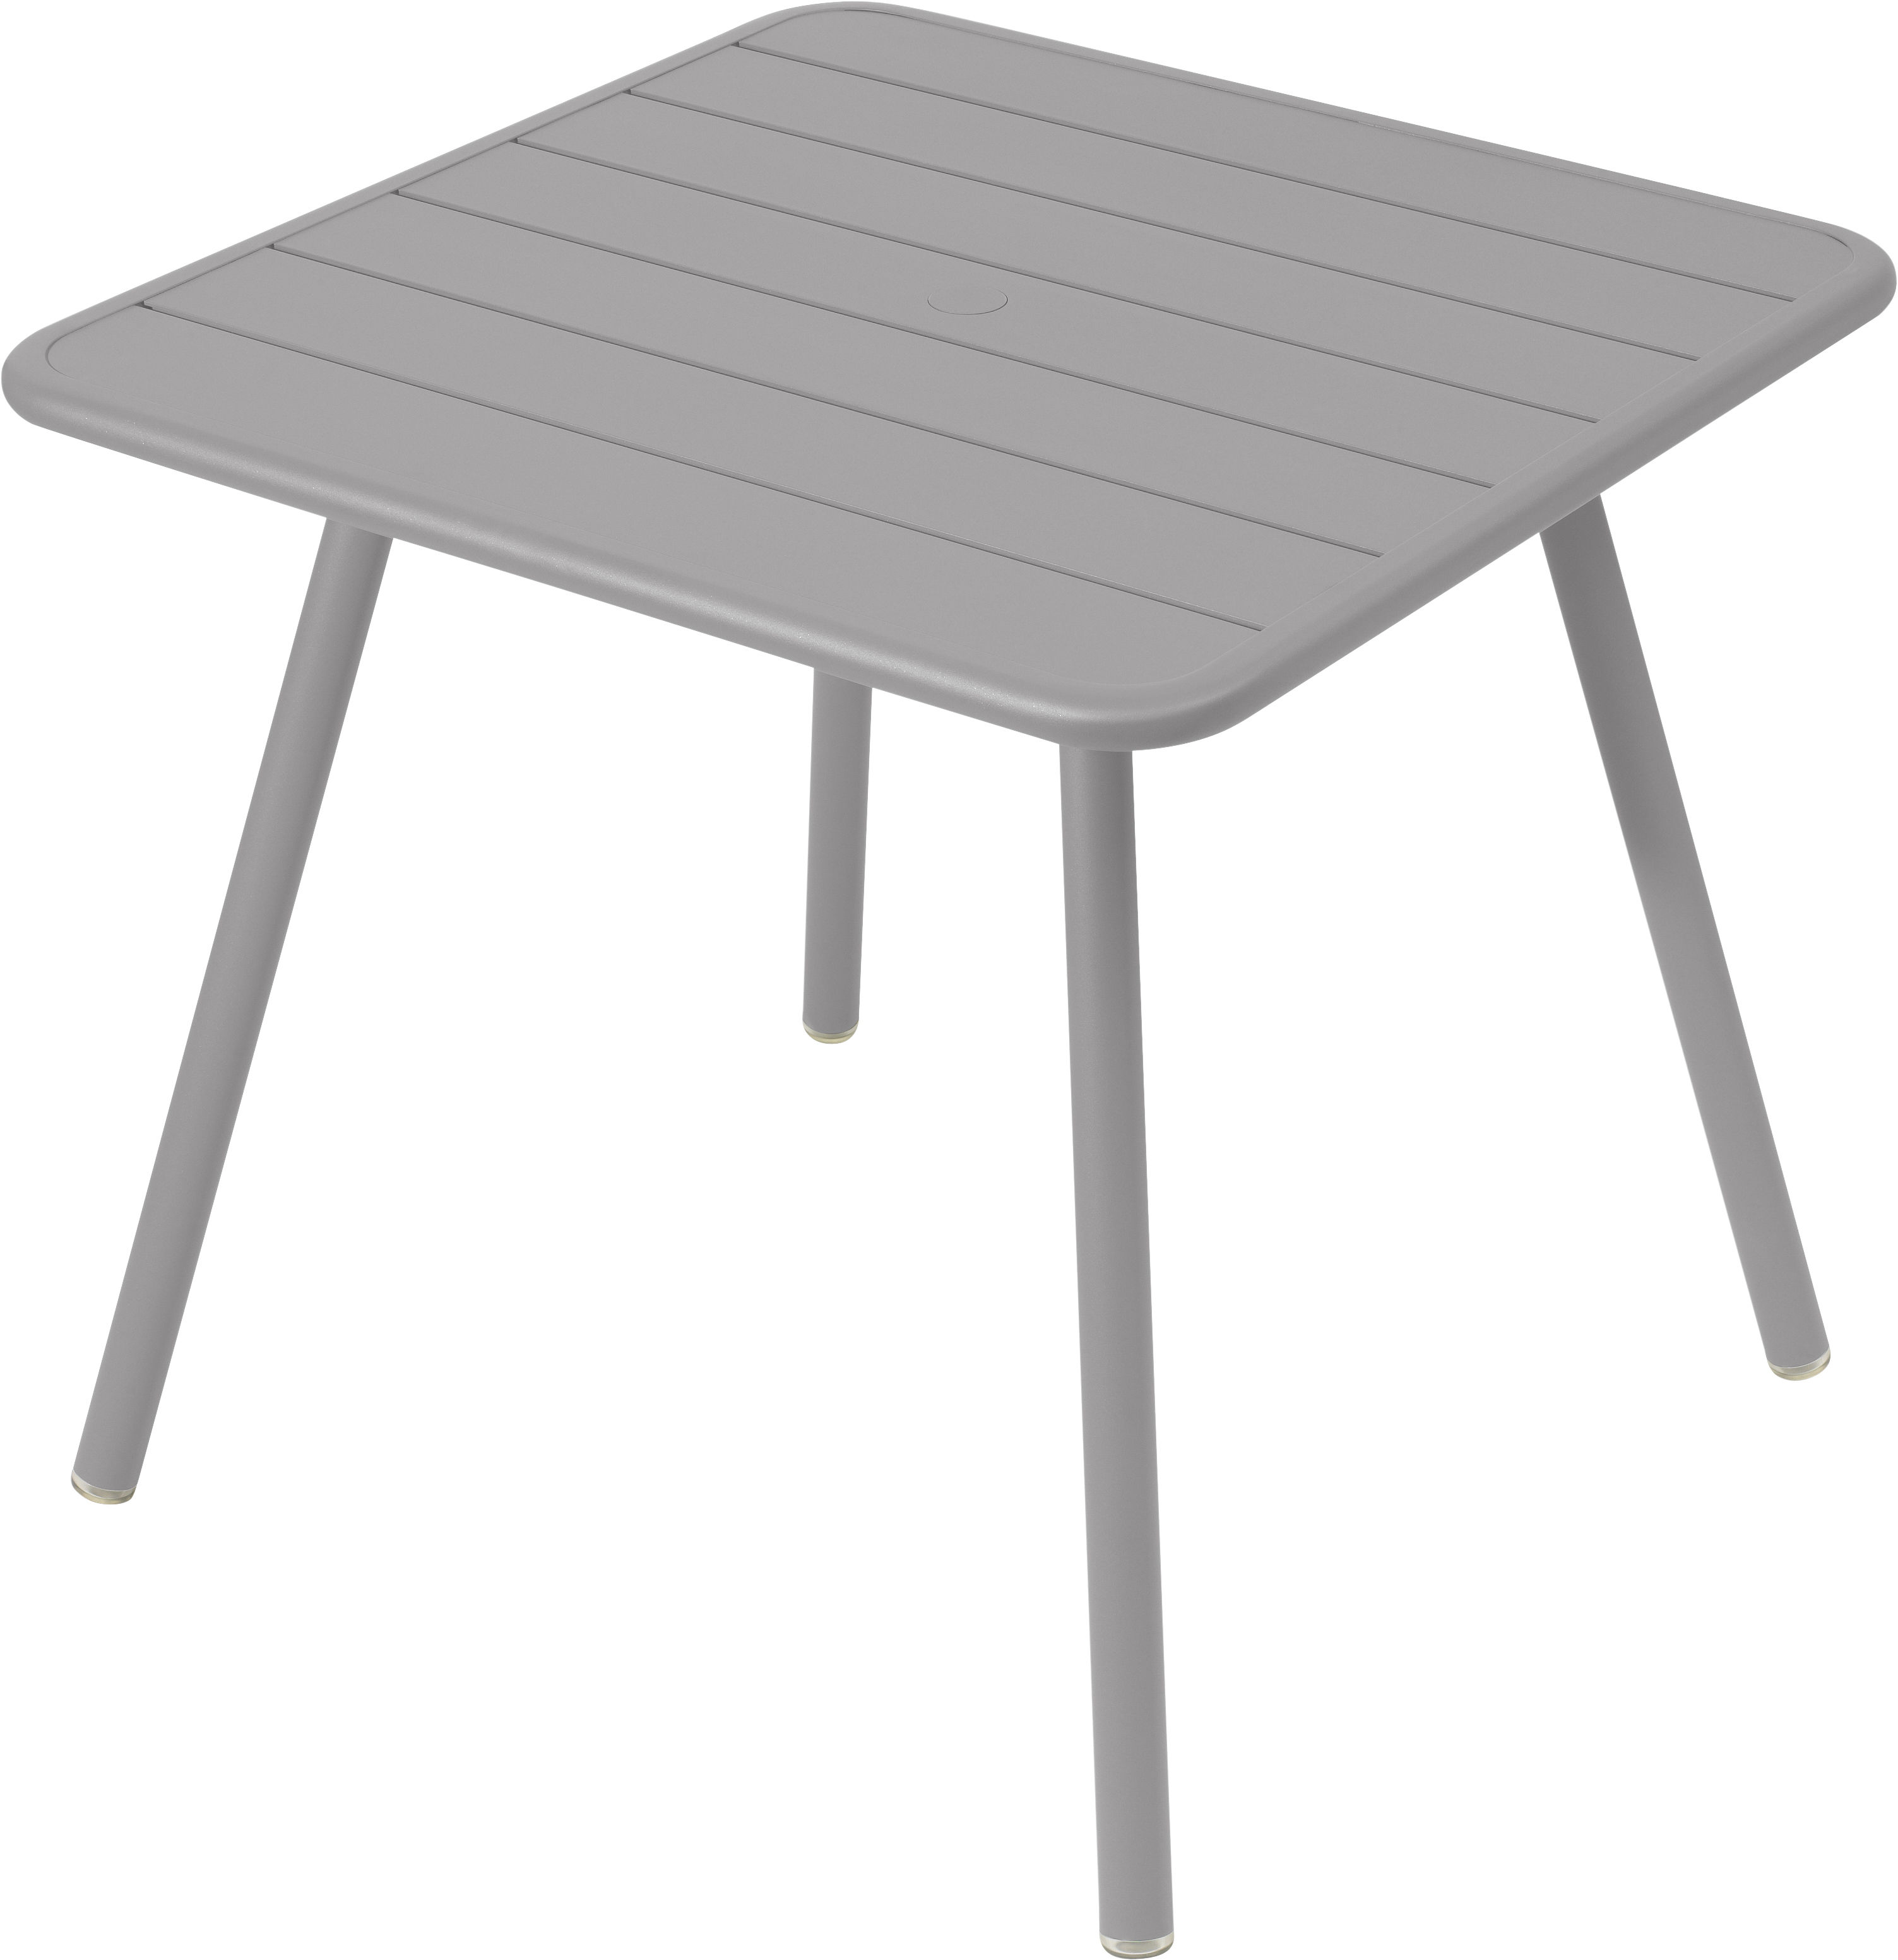 Table luxembourg 80 x 80 cm 4 pieds gris m tal fermob for Table 80 x 80